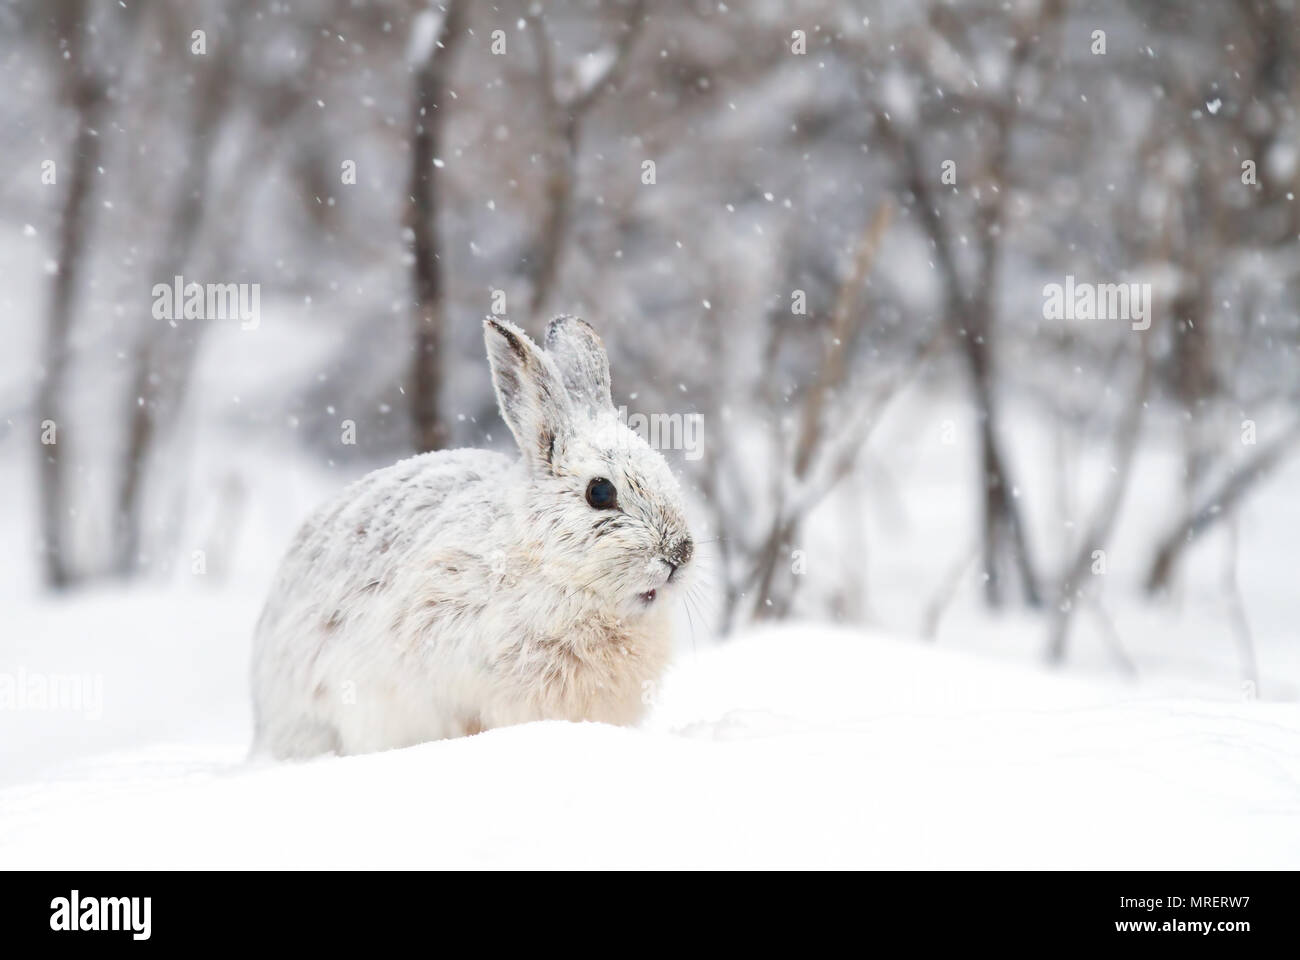 Snowshoe hare or Varying hare (Lepus americanus) standing in the snow with a white coat in winter in Canada - Stock Image